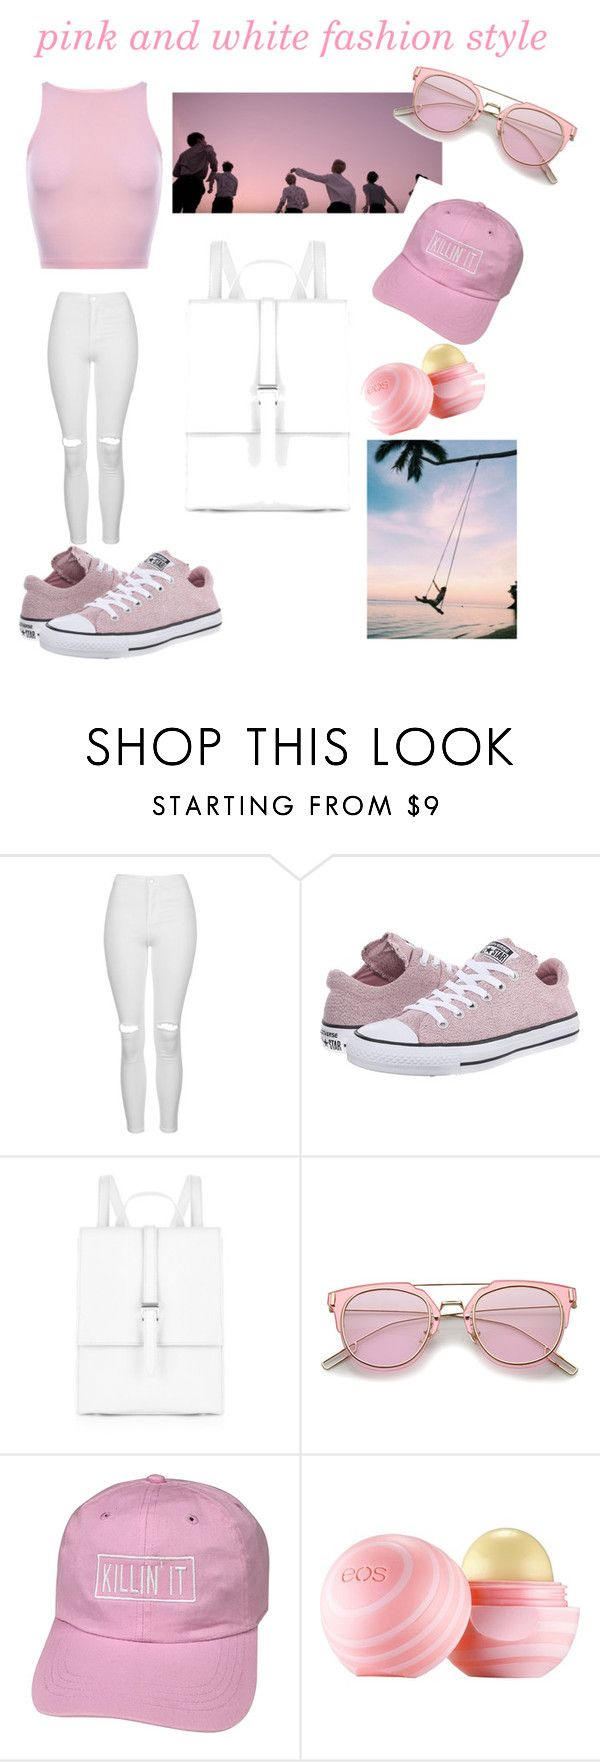 """""""Untitled #4"""" by ksmi02736 ❤ liked on Polyvore featuring Topshop, Converse, Meli Melo and Eos"""